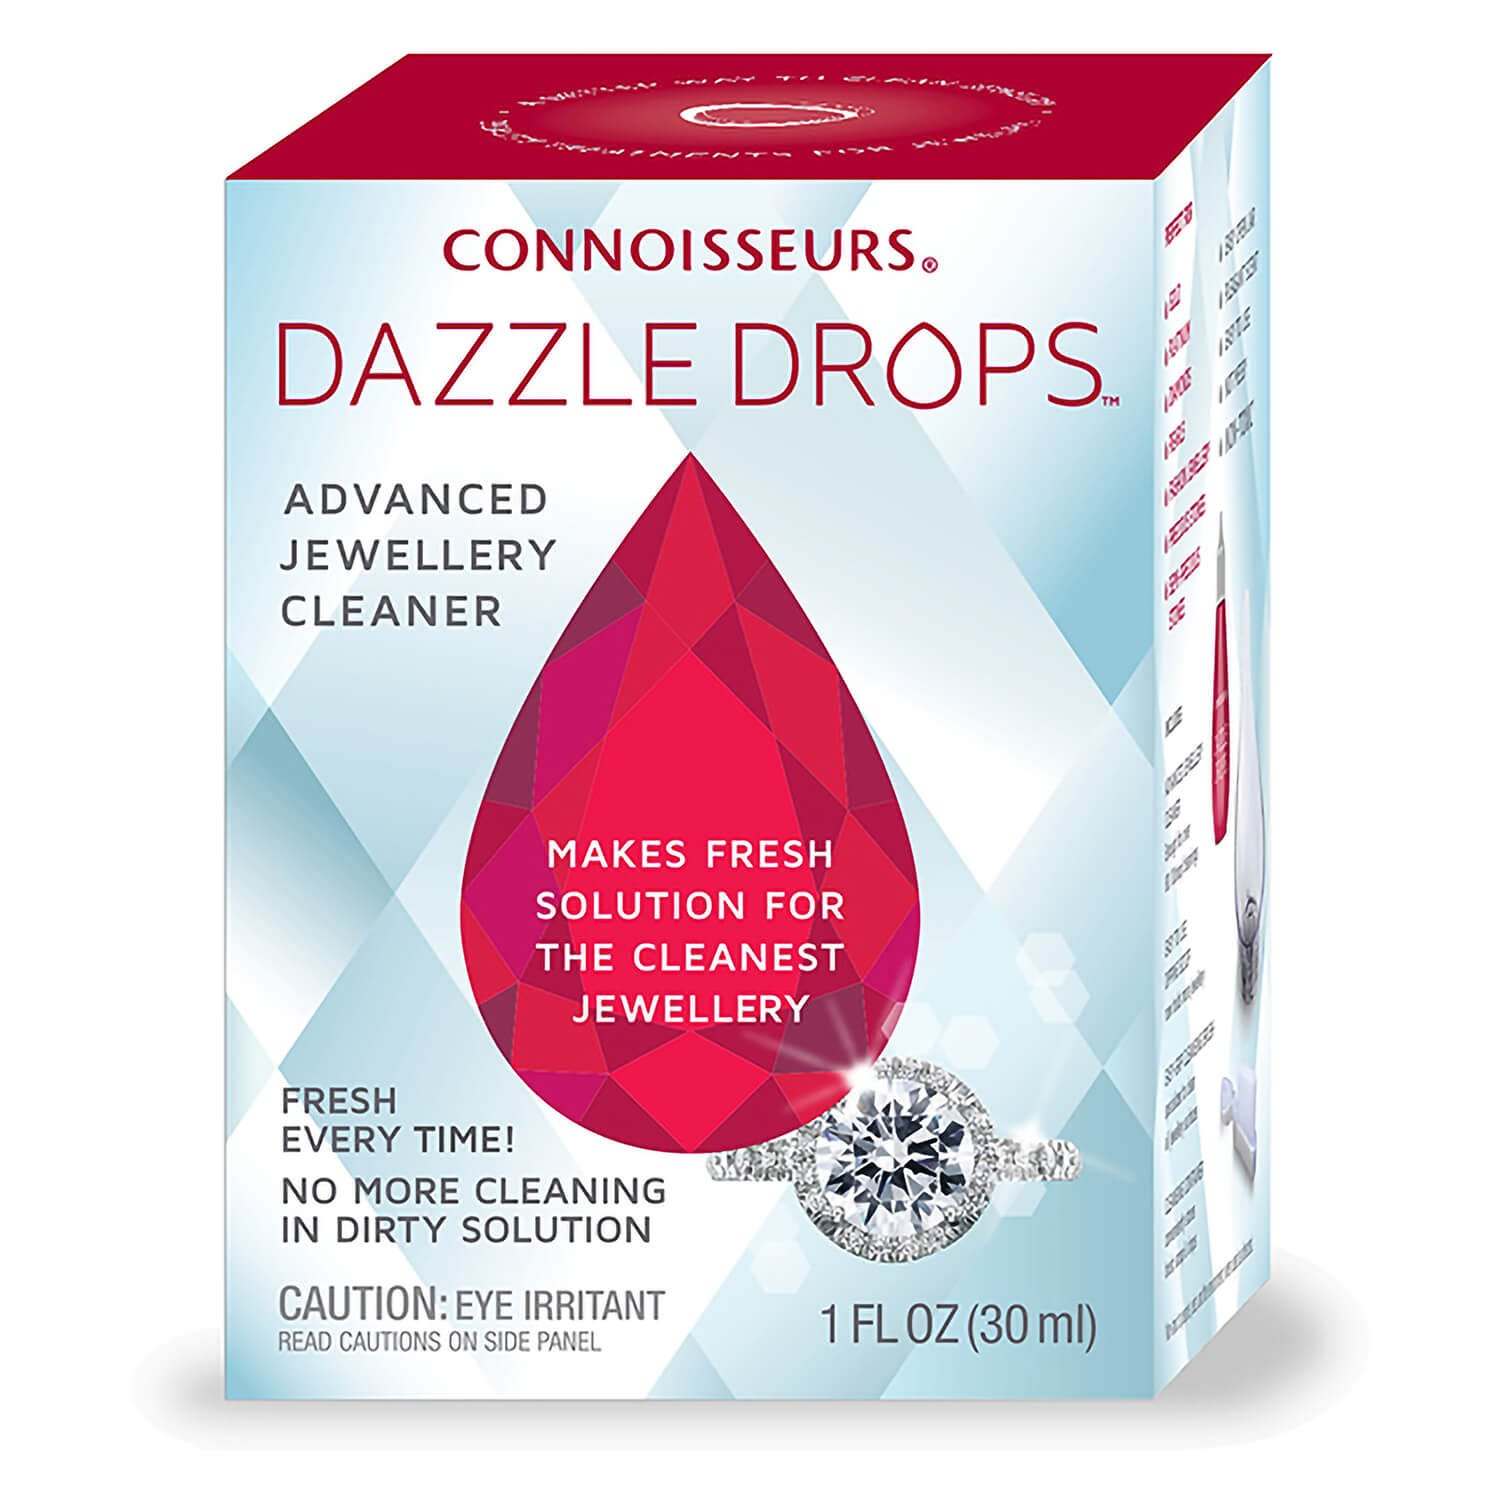 Connoisseurs Dazzle Drops Advanced Jewellery Cleaner